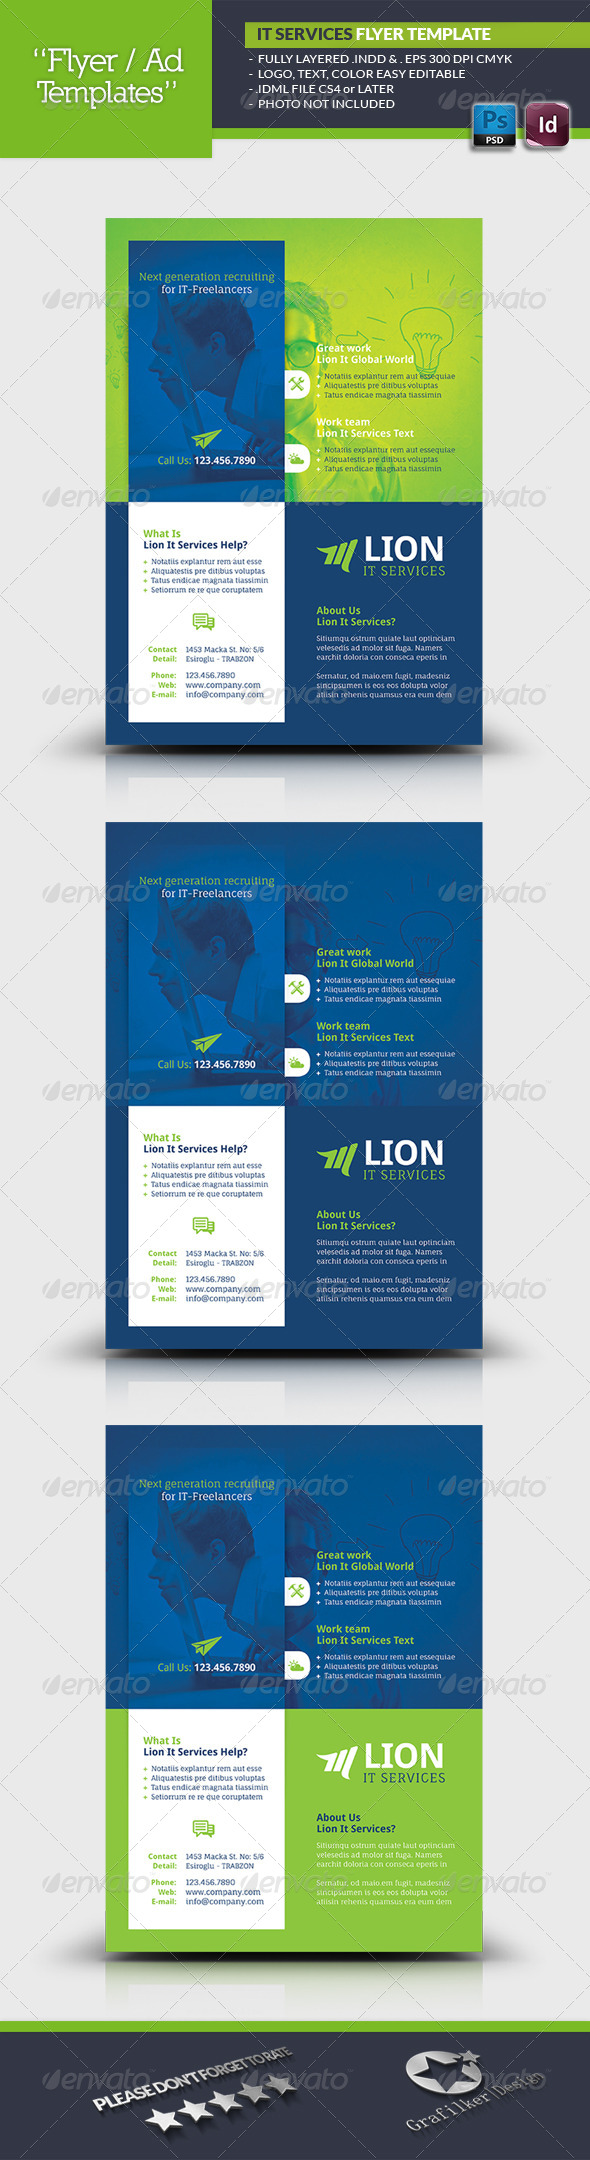 IT Services Flyer Template - Corporate Flyers